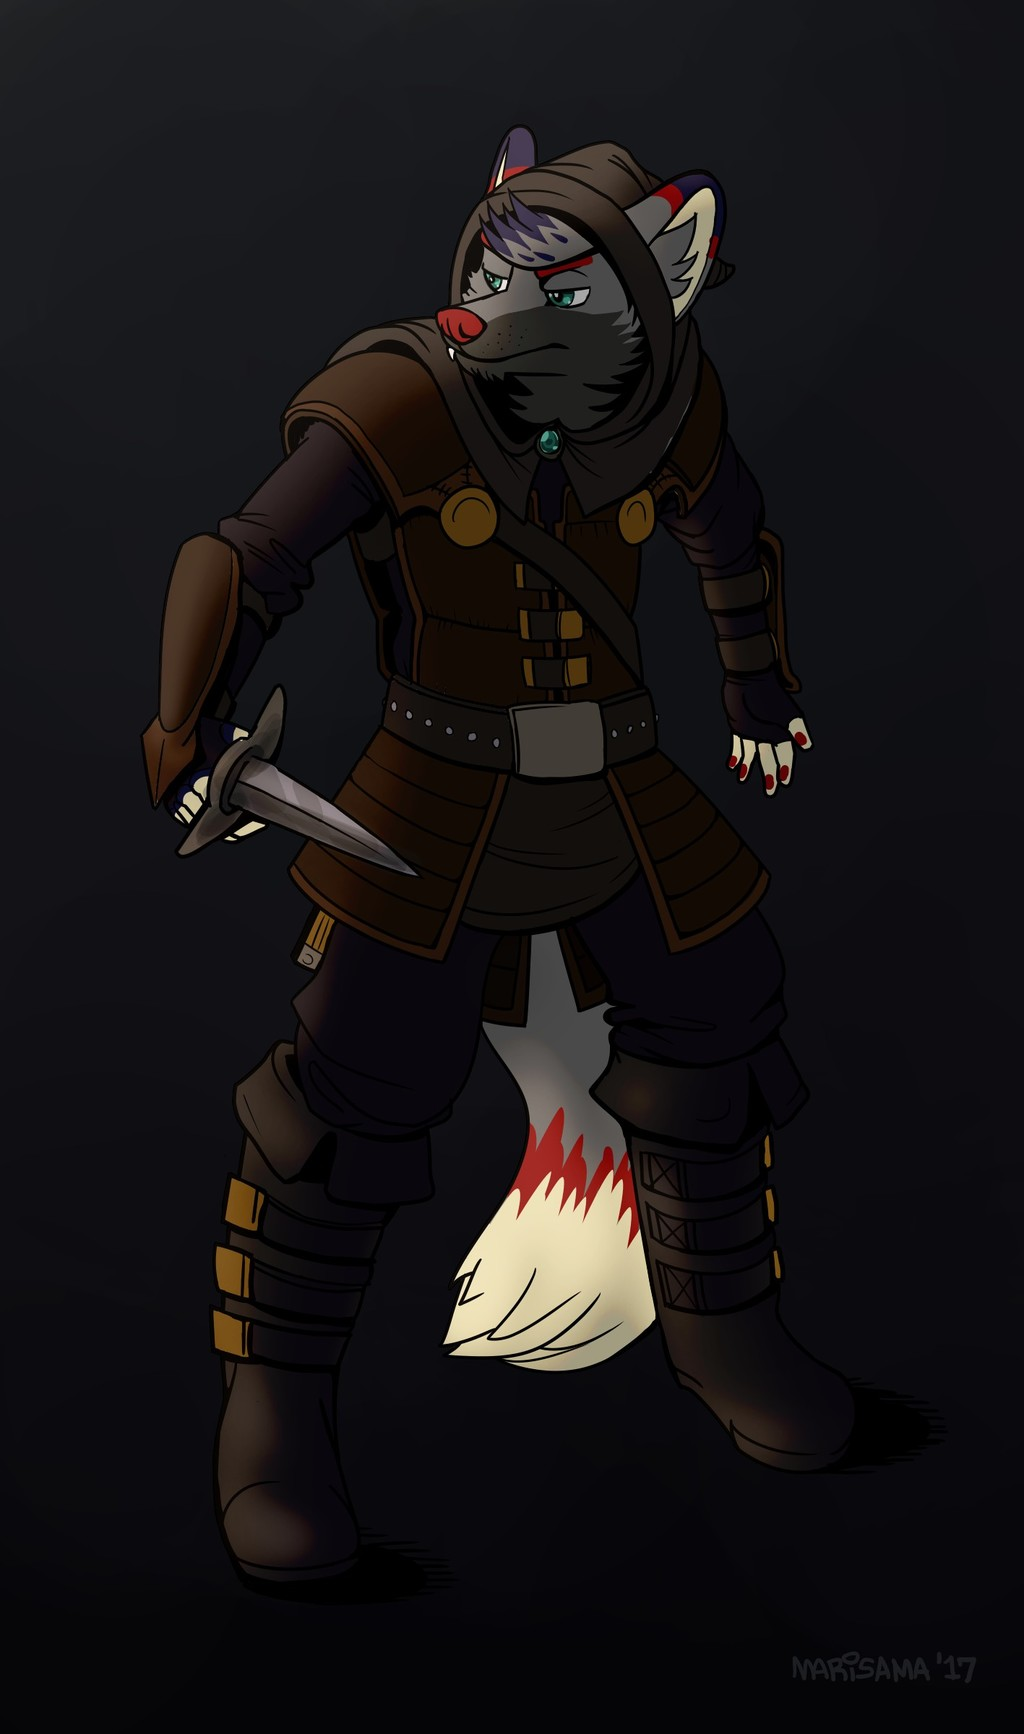 Most recent image: Righ the Fox